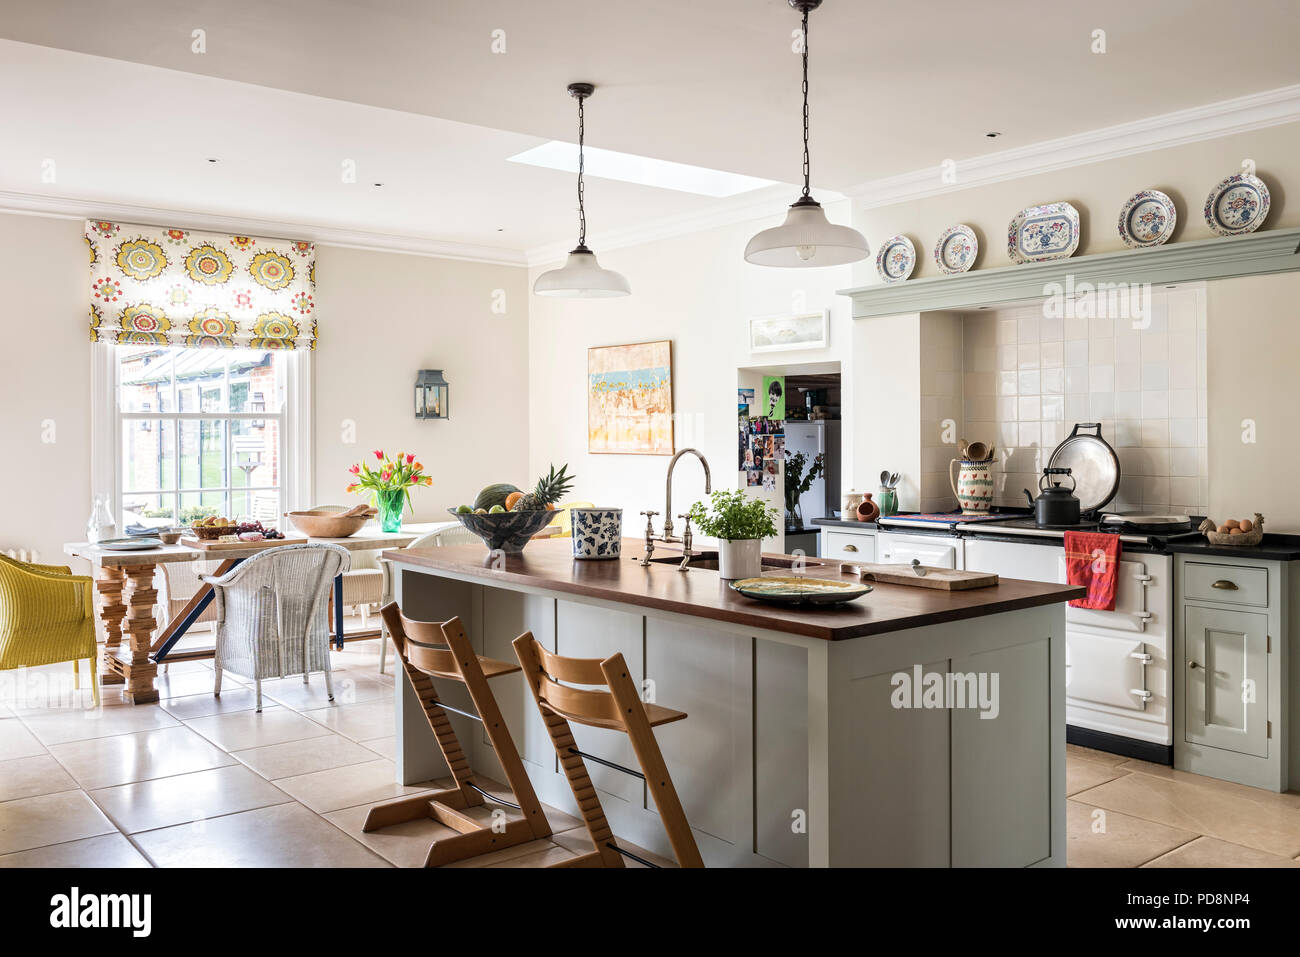 Wooden bar stools at island unit in open plan kitchen diner & Wooden bar stools at island unit in open plan kitchen diner Stock ...